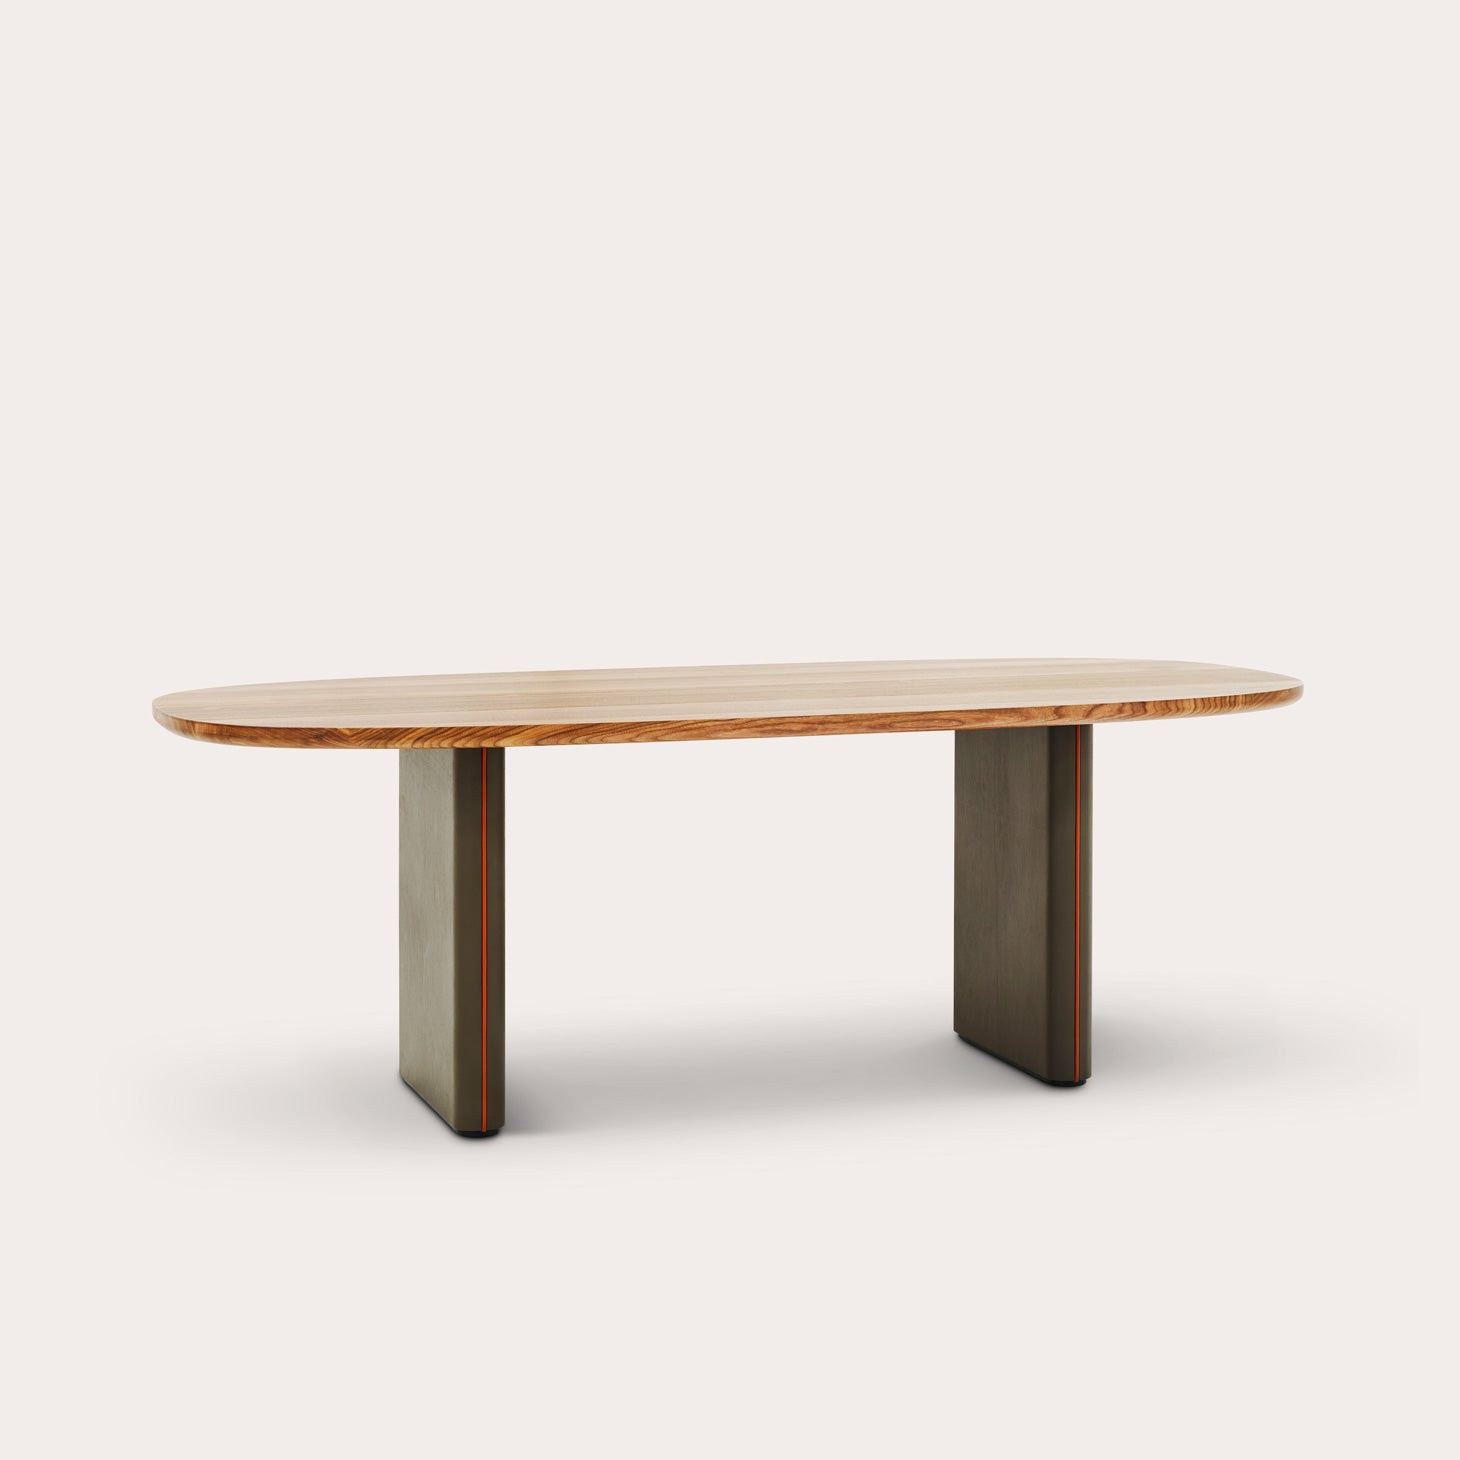 Merwyn Table Tables Sebastian Herkner Designer Furniture Sku: 758-230-10051